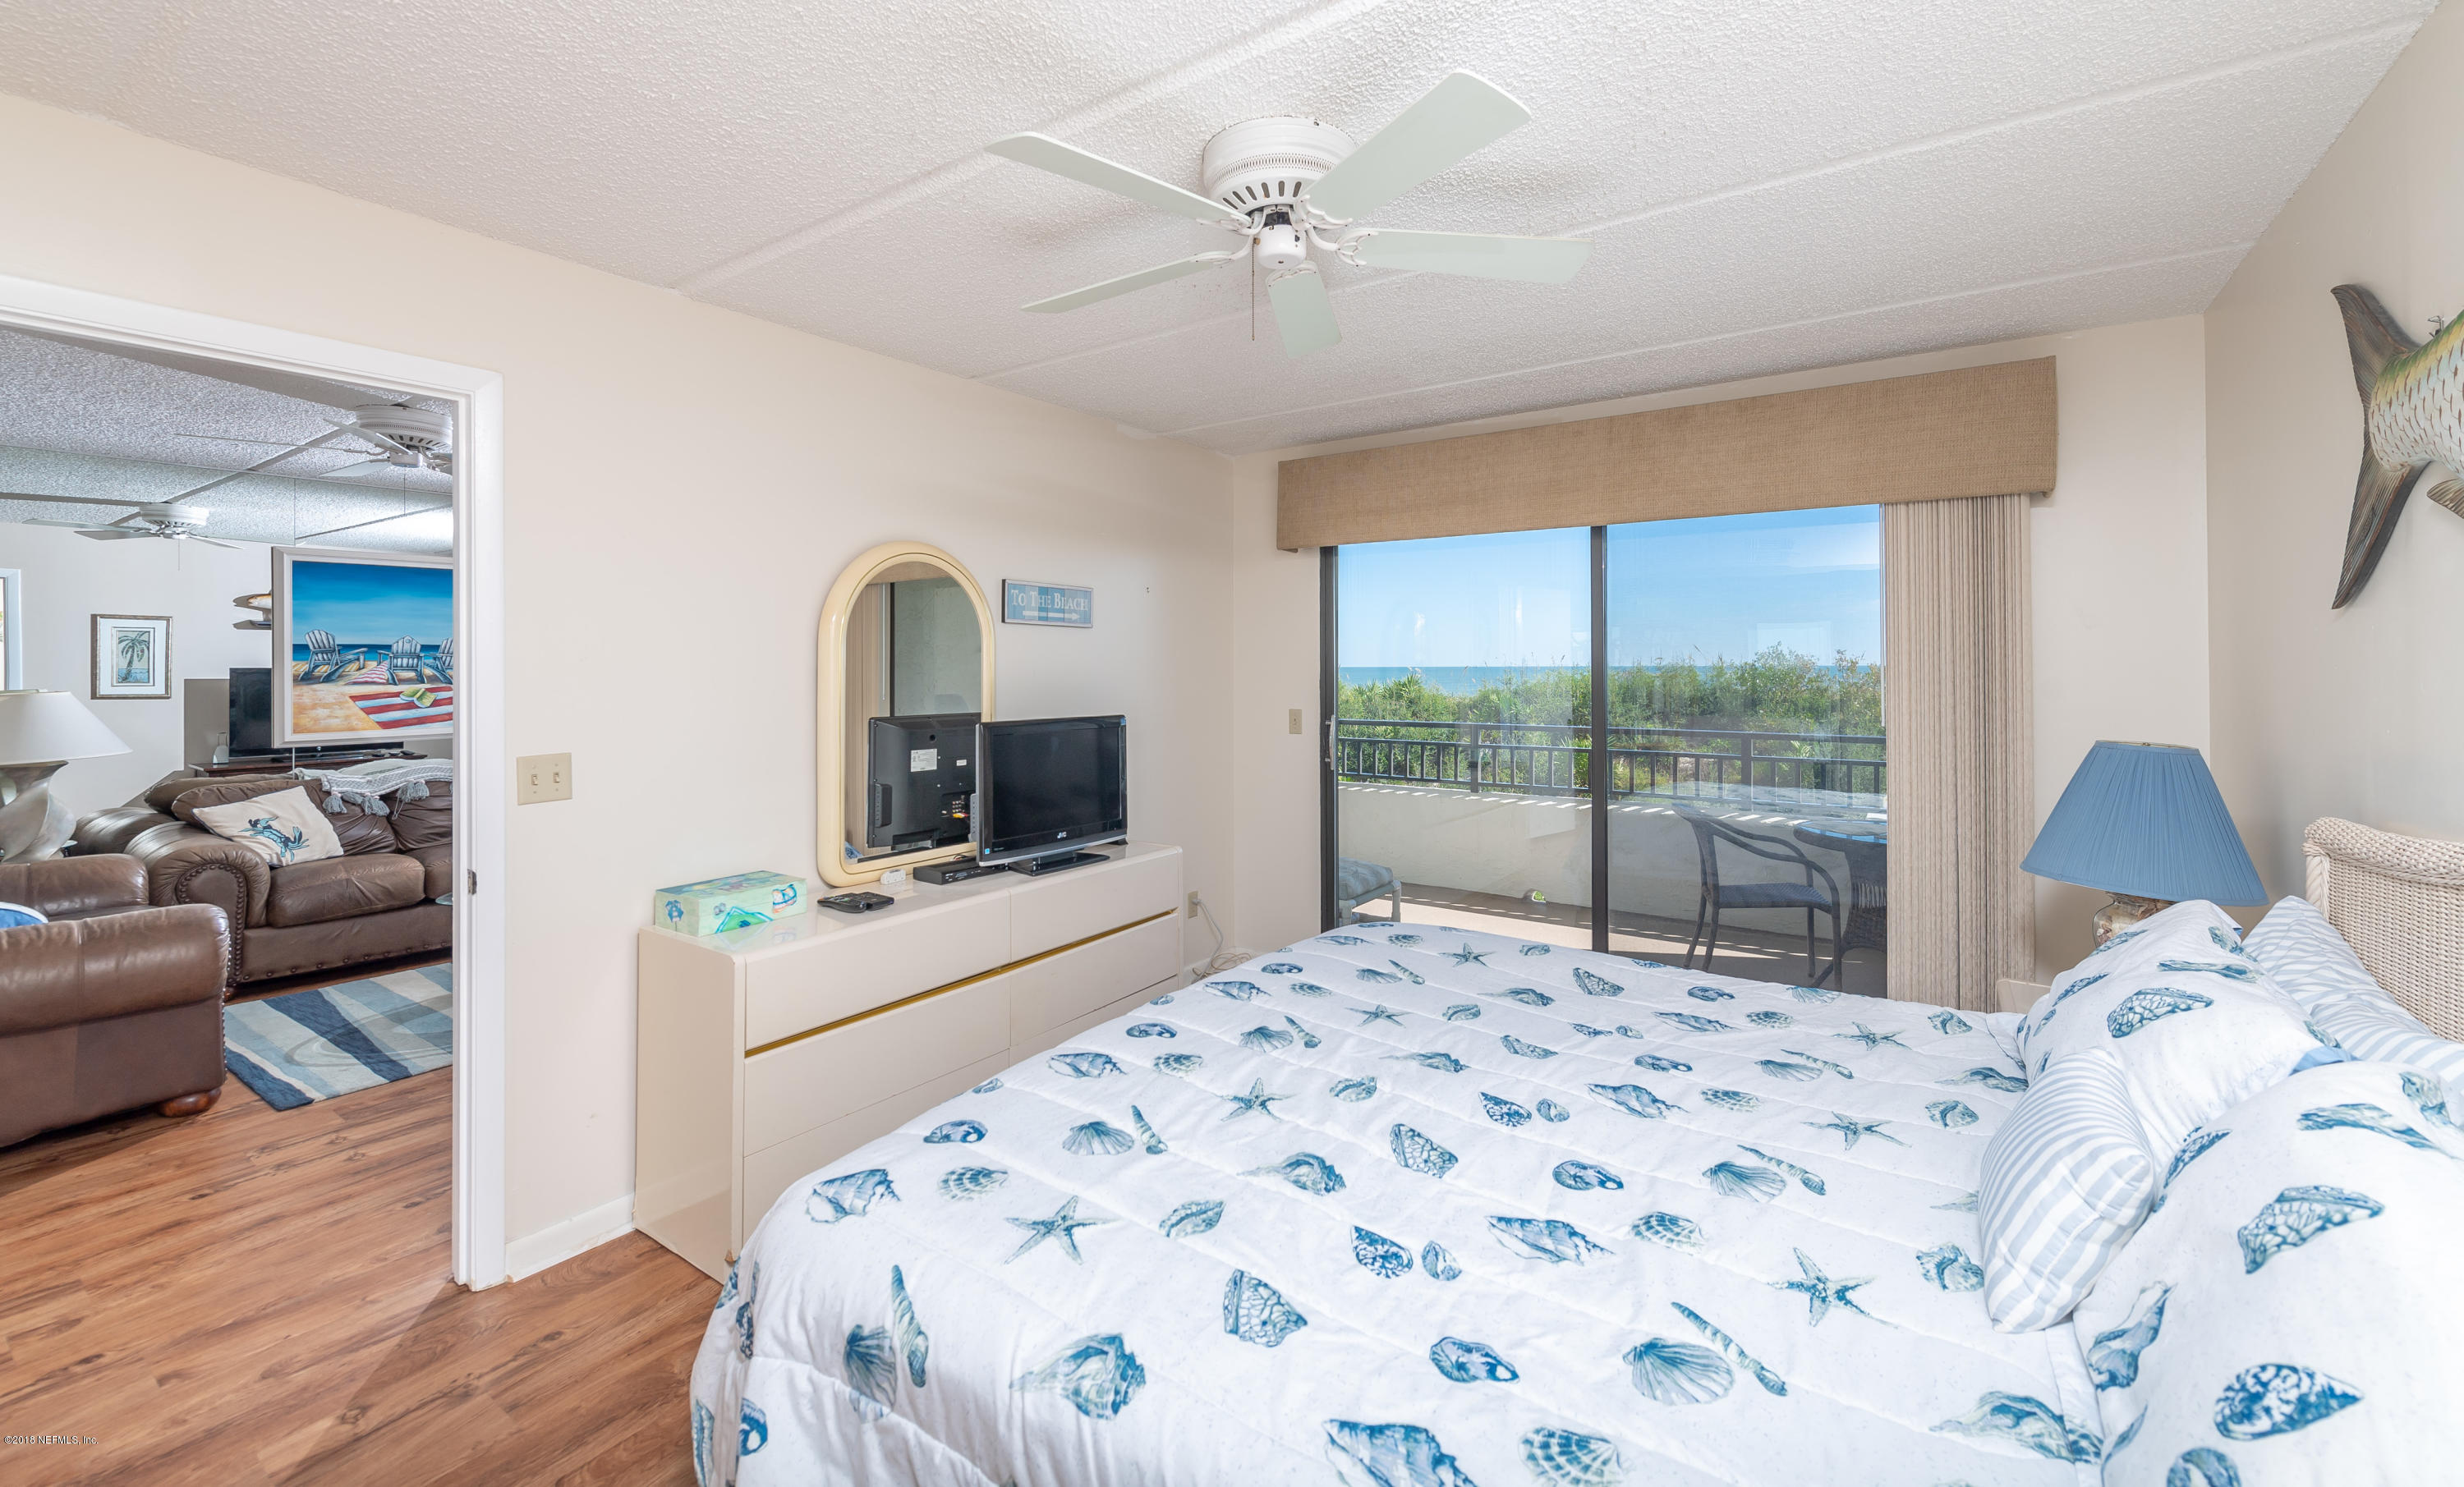 7780 A1A, ST AUGUSTINE, FLORIDA 32080, 2 Bedrooms Bedrooms, ,2 BathroomsBathrooms,Residential - condos/townhomes,For sale,A1A,964981